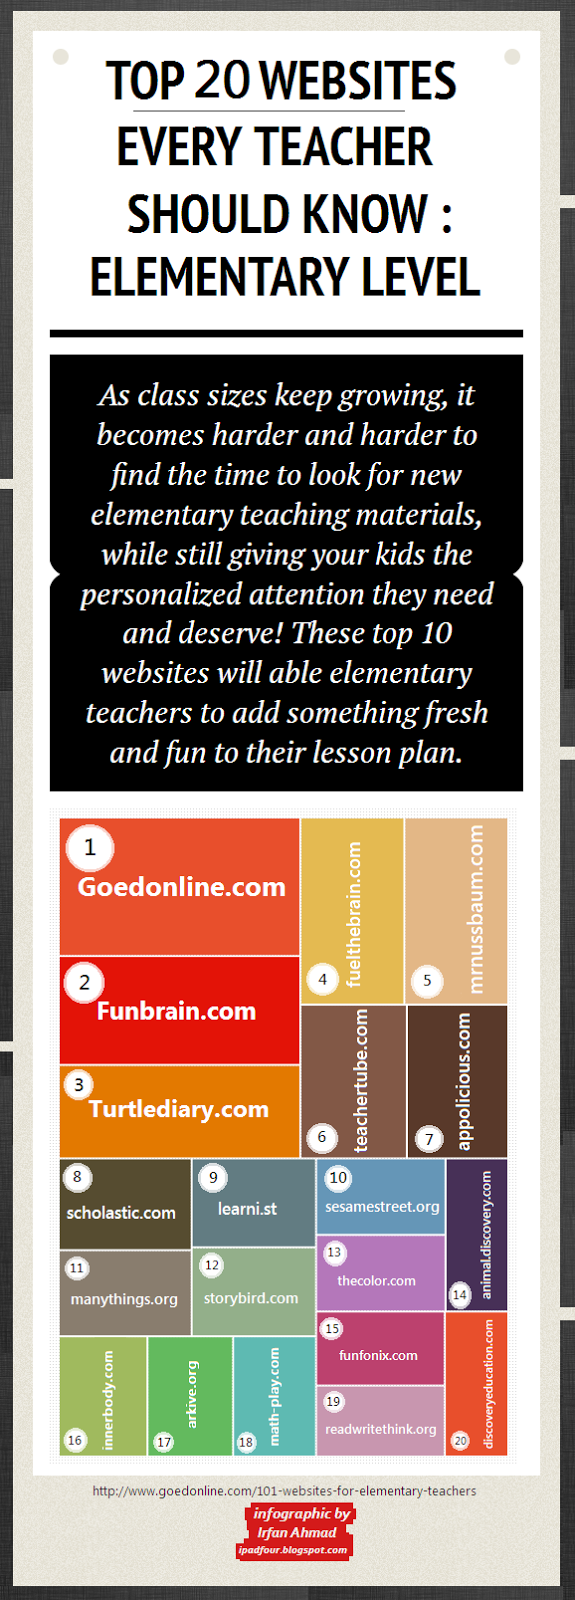 Top 20 Websites Every Teacher Should Know [infographic]